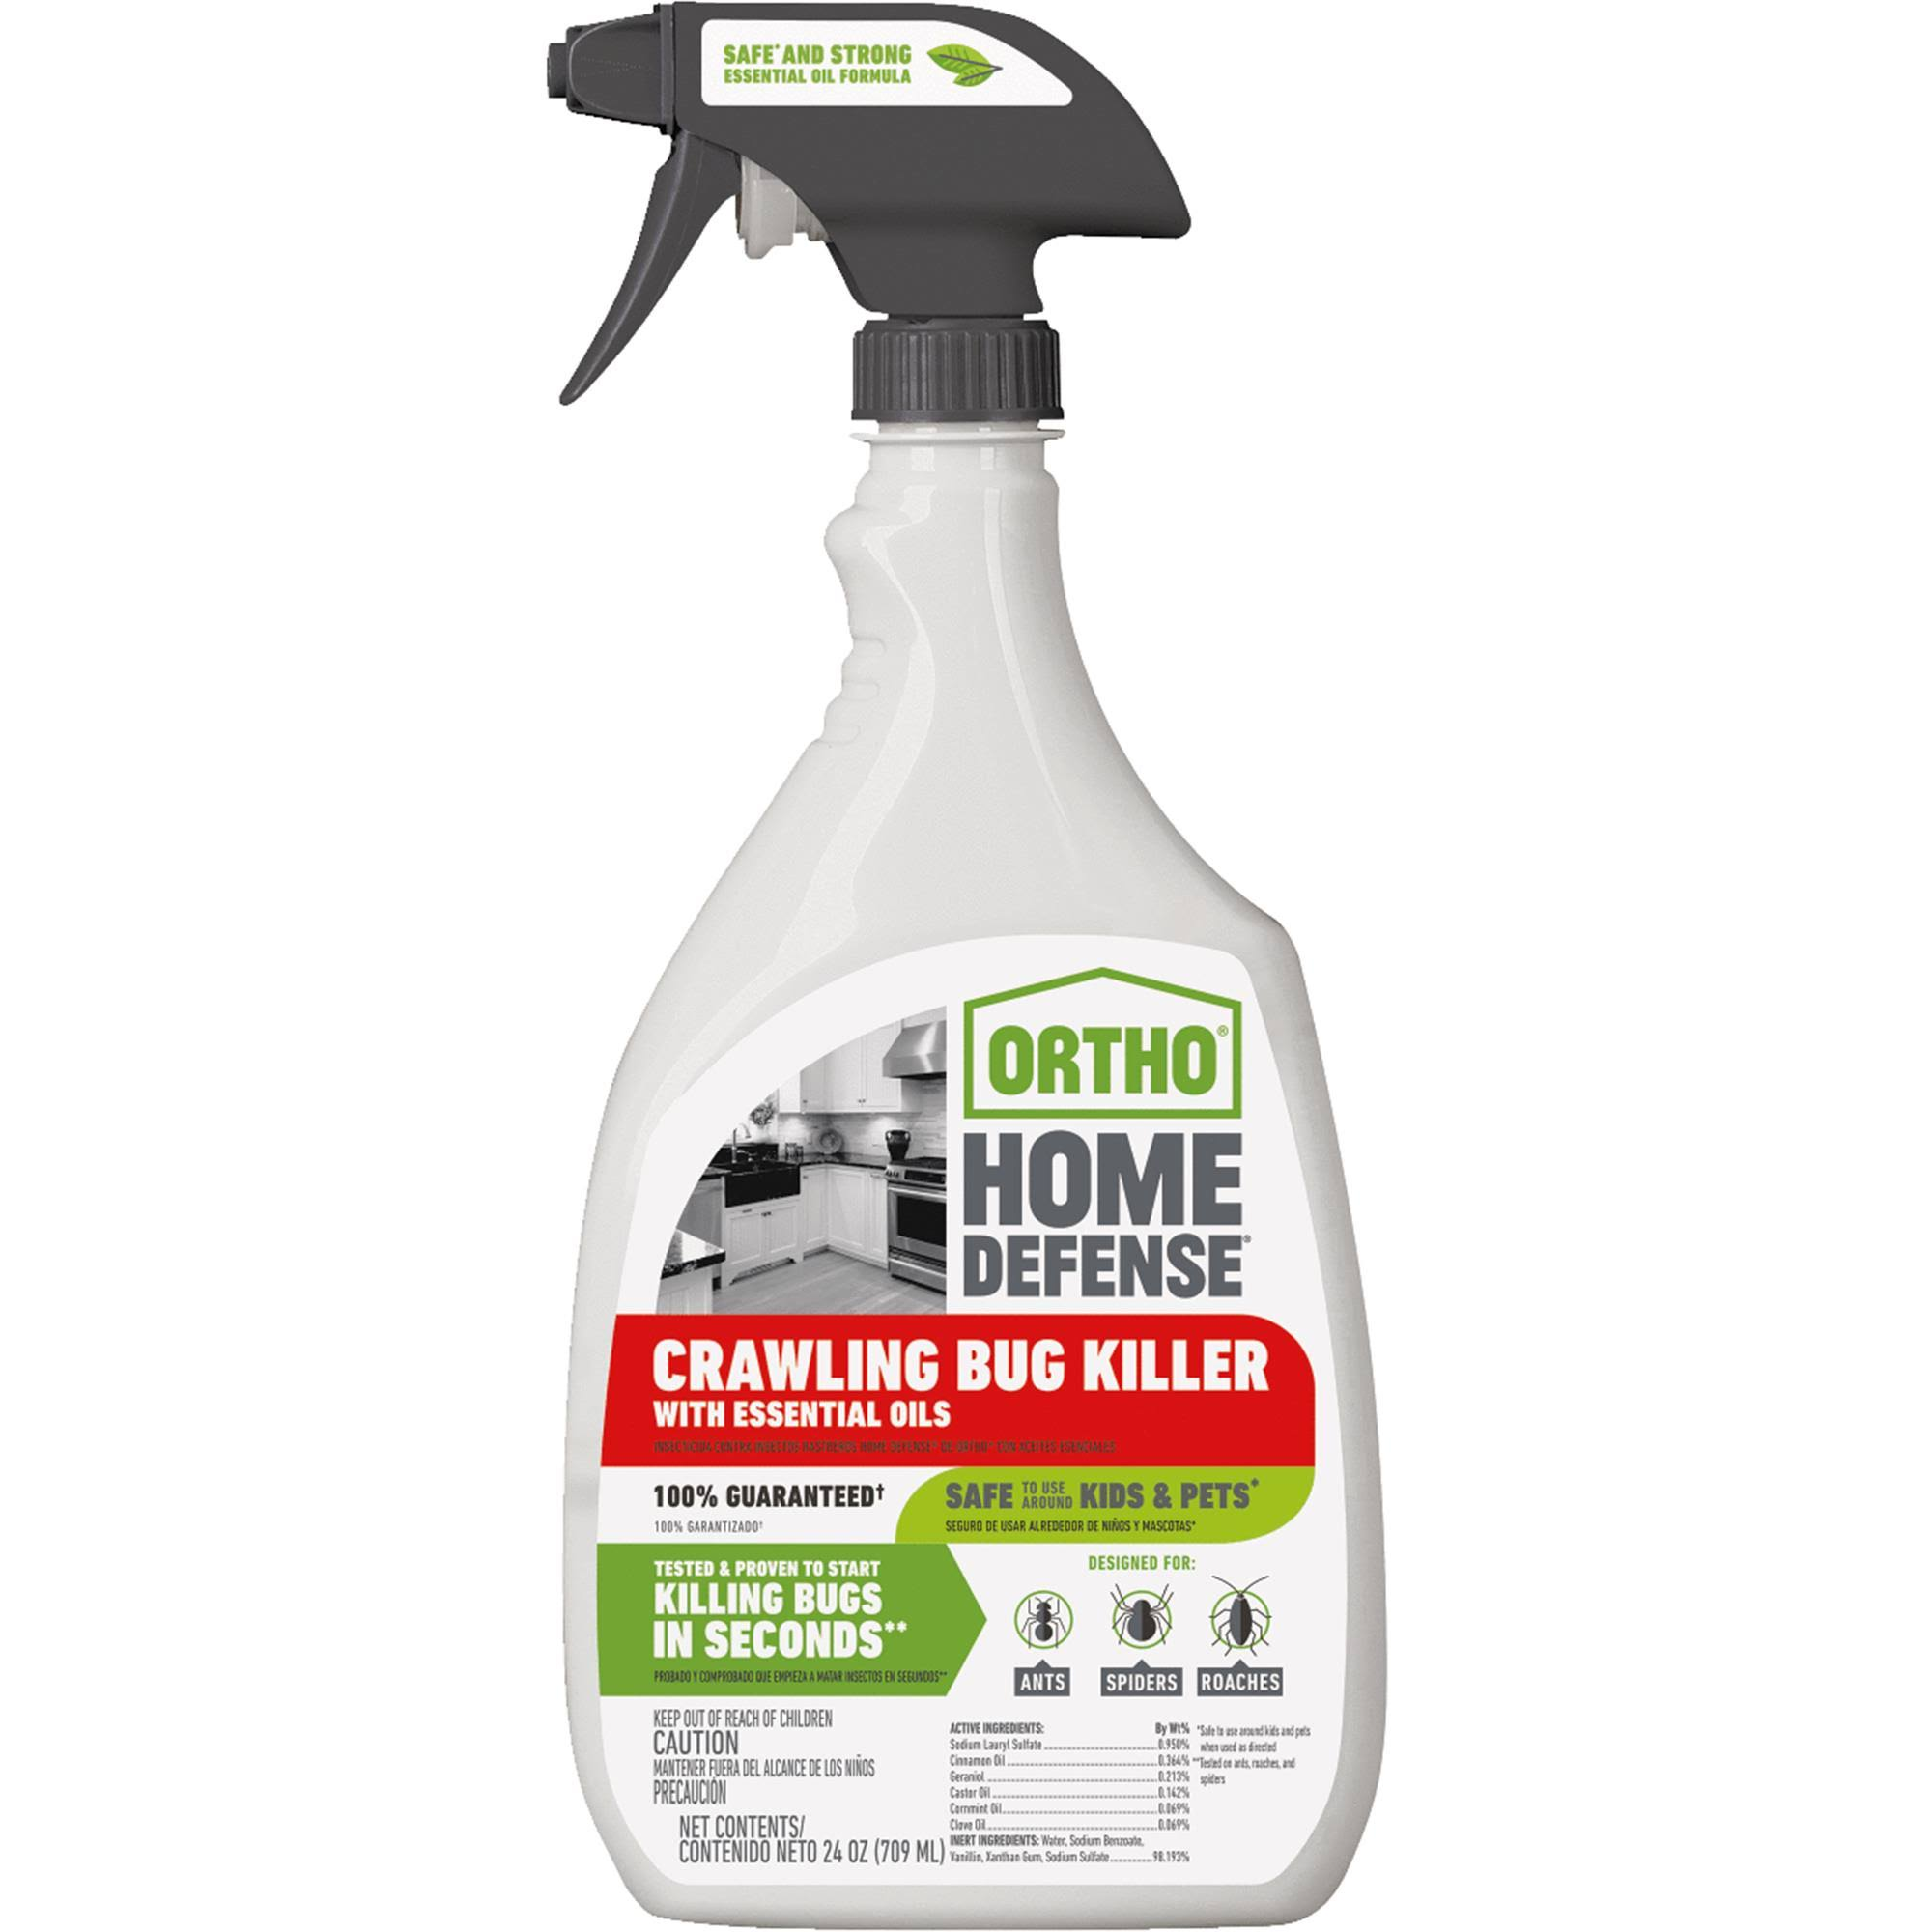 Scotts Ortho Home Defense Crawling Bug Killer - 24oz